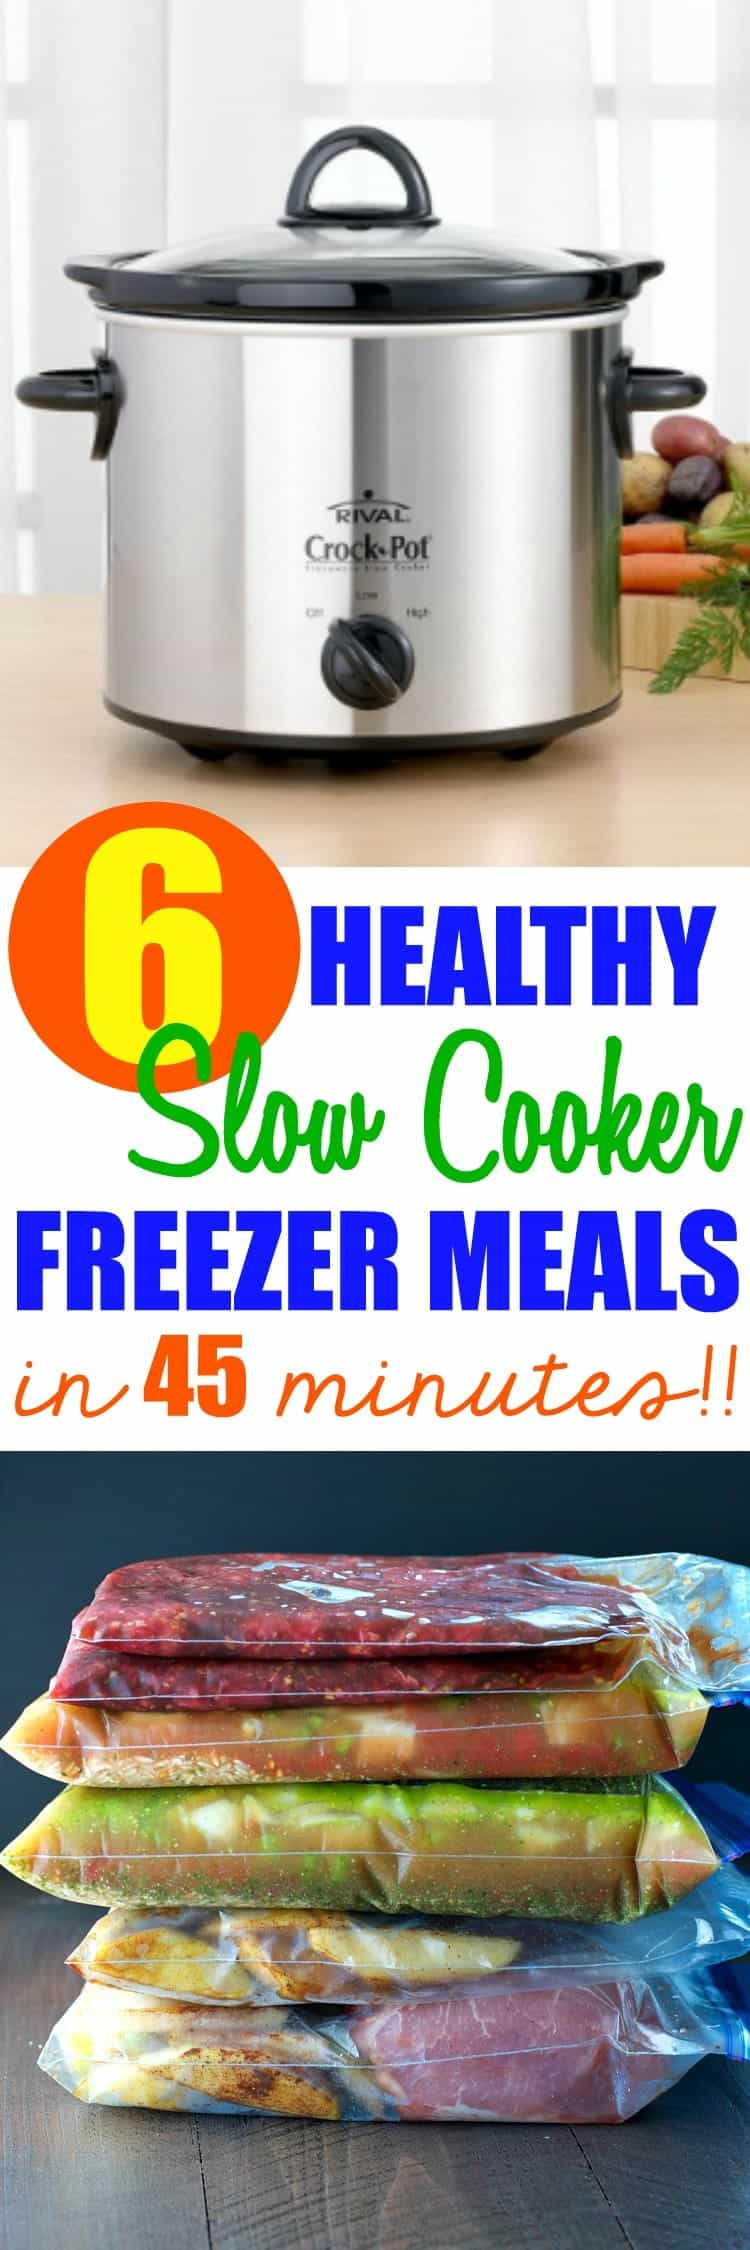 6 Healthy Slow Cooker Freezer Meals in 45 Minutes!